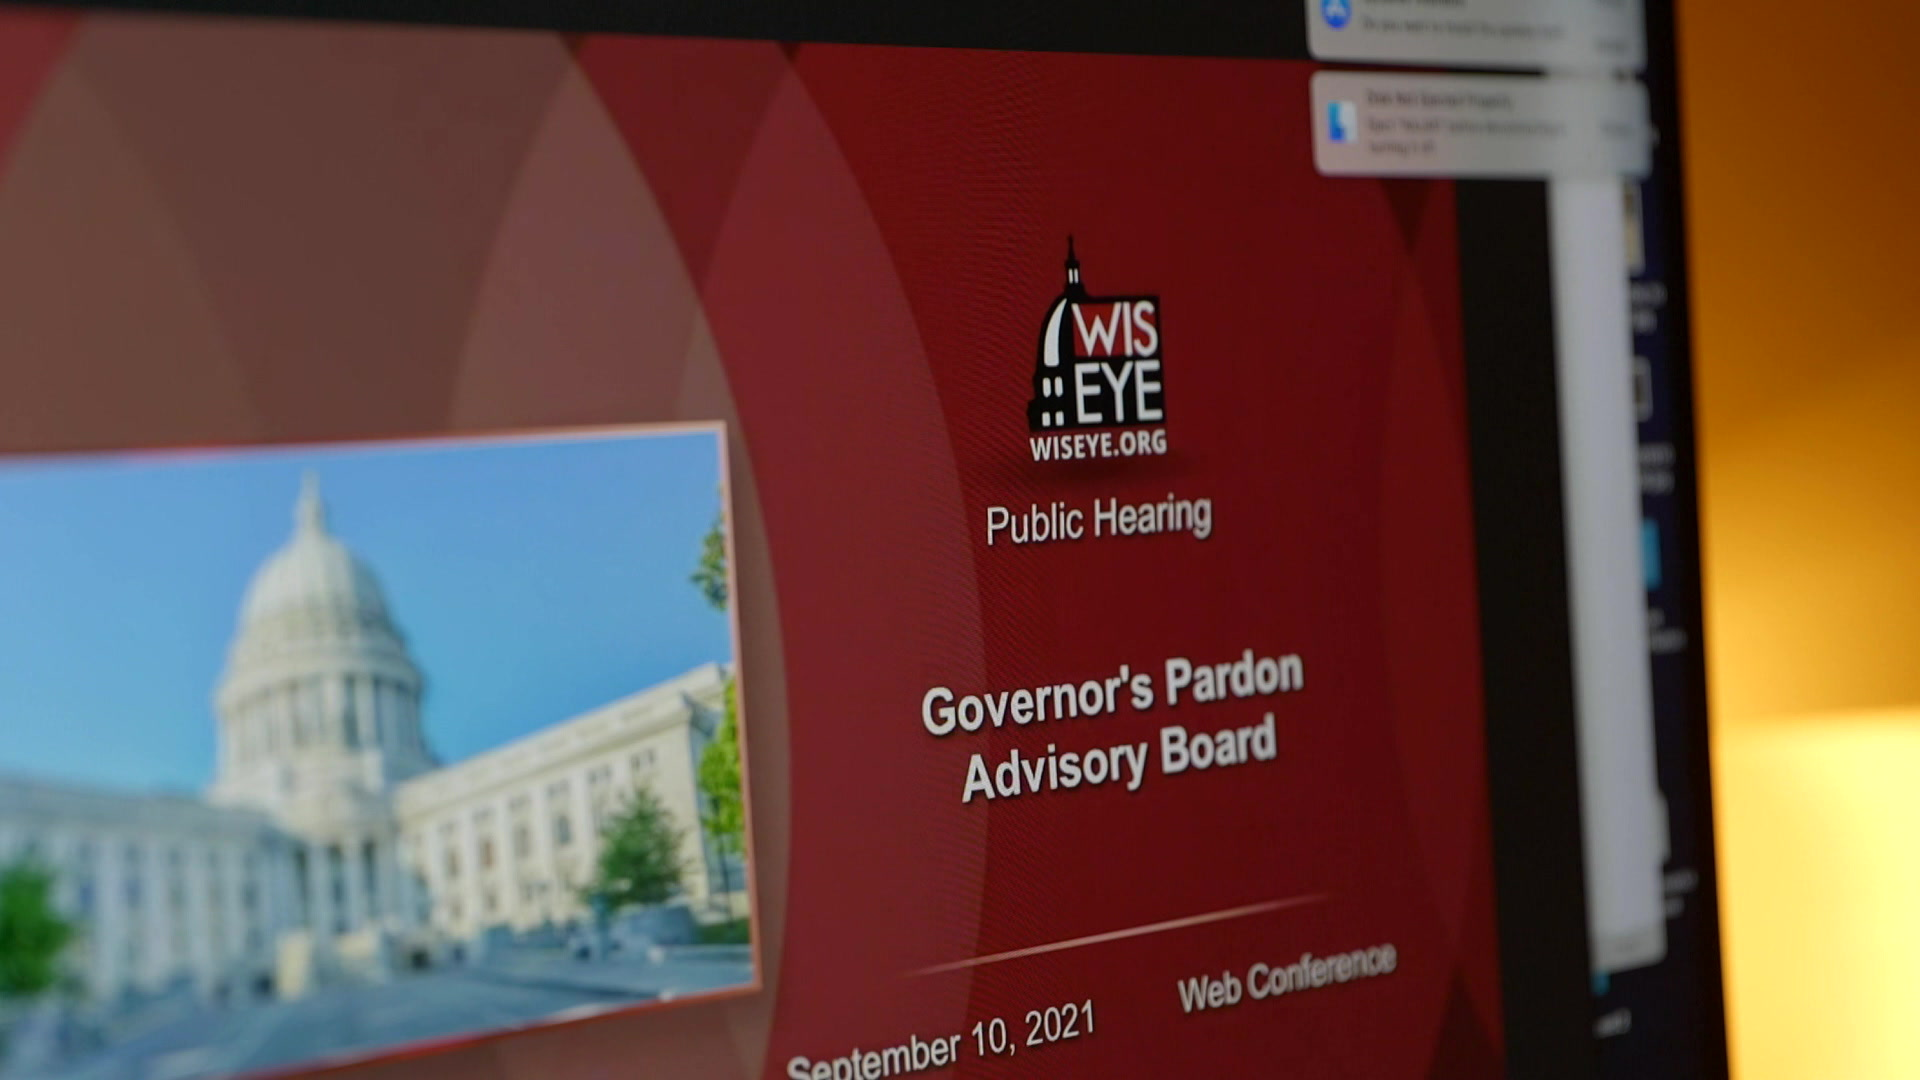 A compter shows the title screen for a WisEye presentation of a Governor's Pardon Advisory Board web conference.